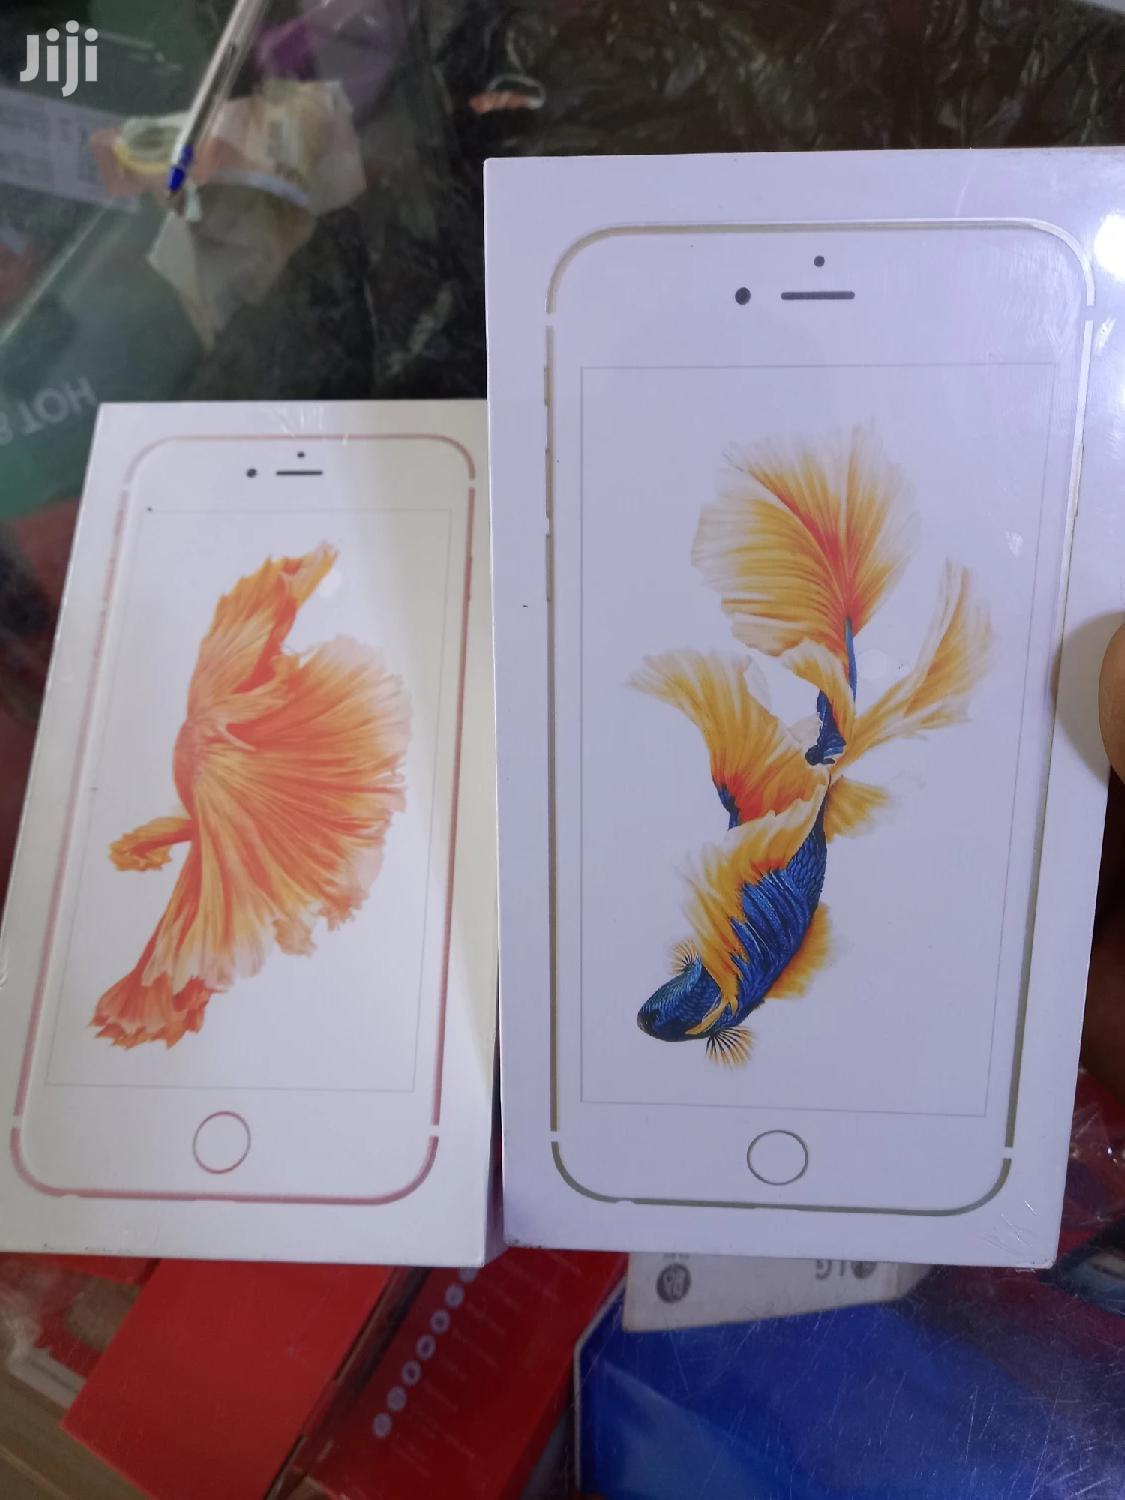 New Apple iPhone 6s Plus 64 GB Gold | Mobile Phones for sale in Madina, Greater Accra, Ghana